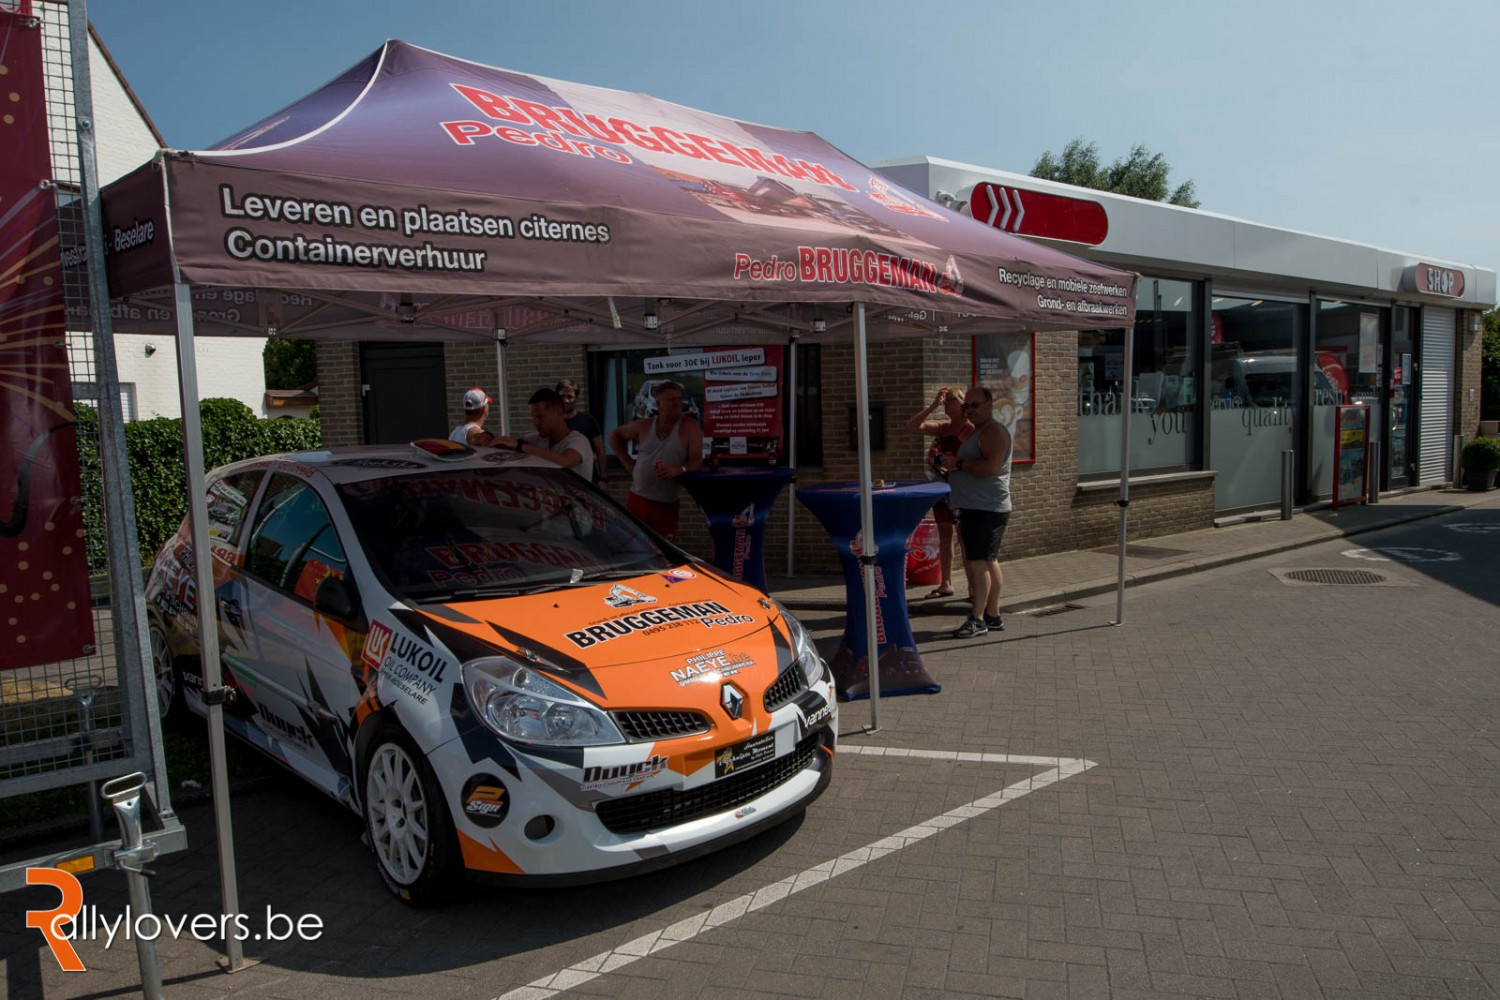 Ypres Rally - Voorstelling Renault Clio R3 Steven Dolfen